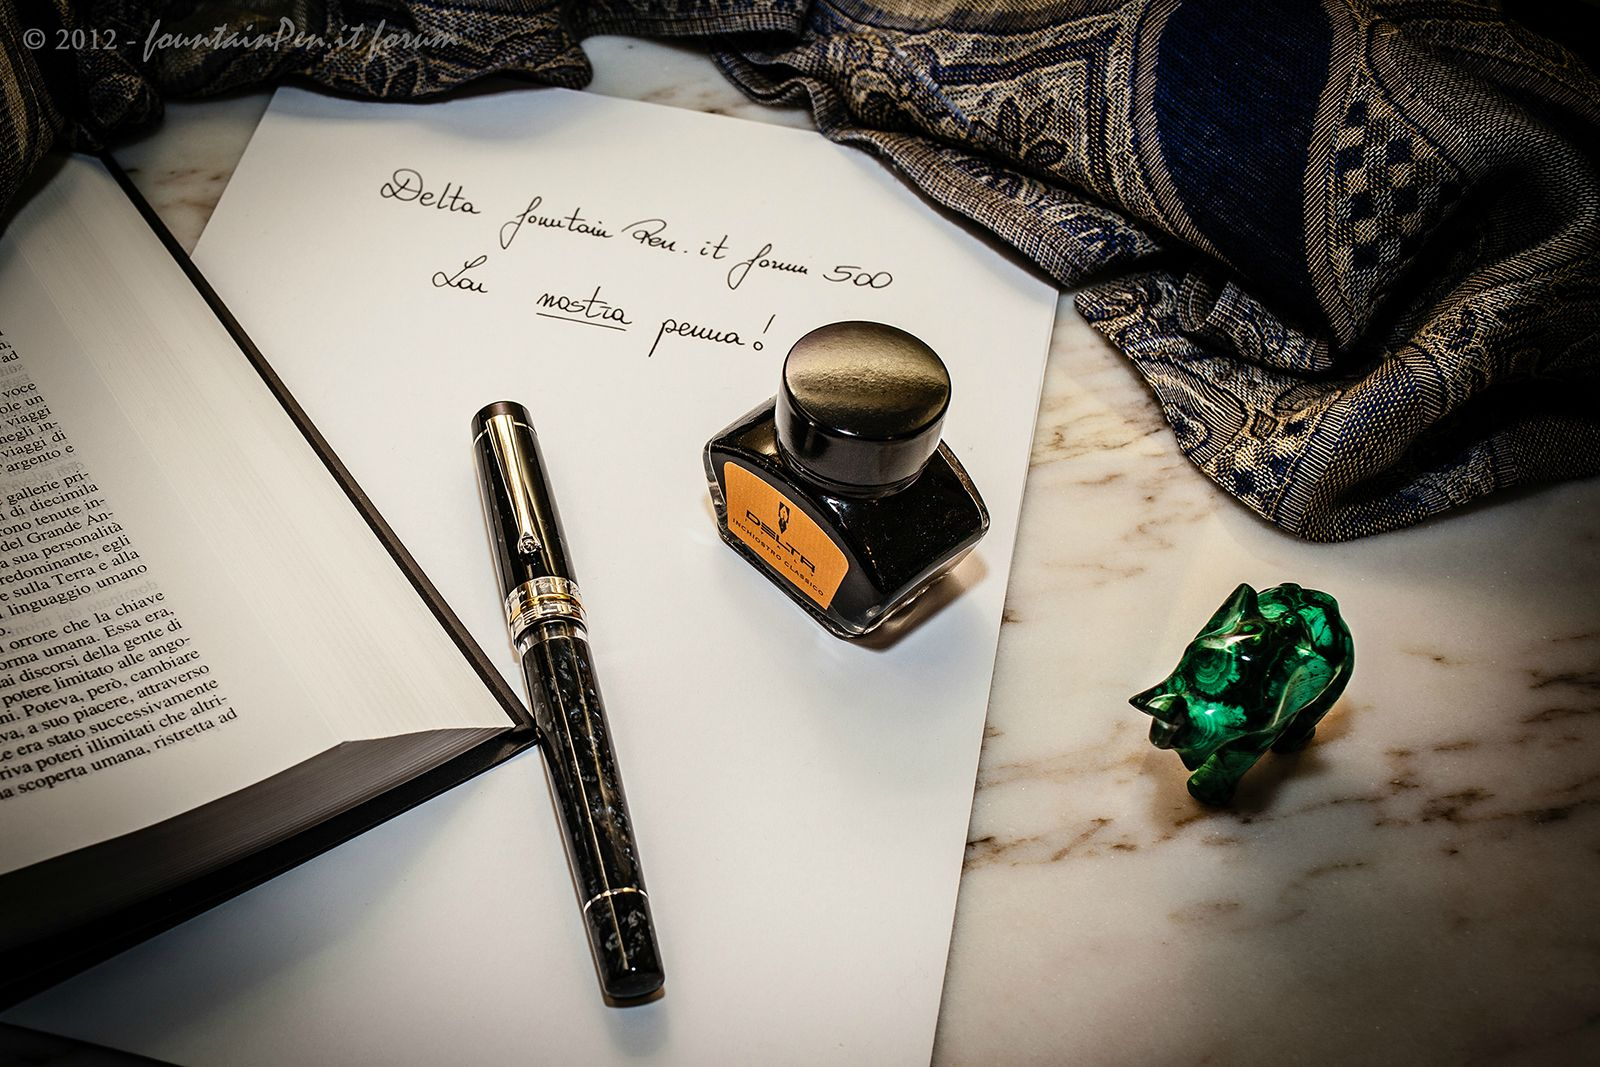 Delta Fountain Pen 500 Forum 1.jpg